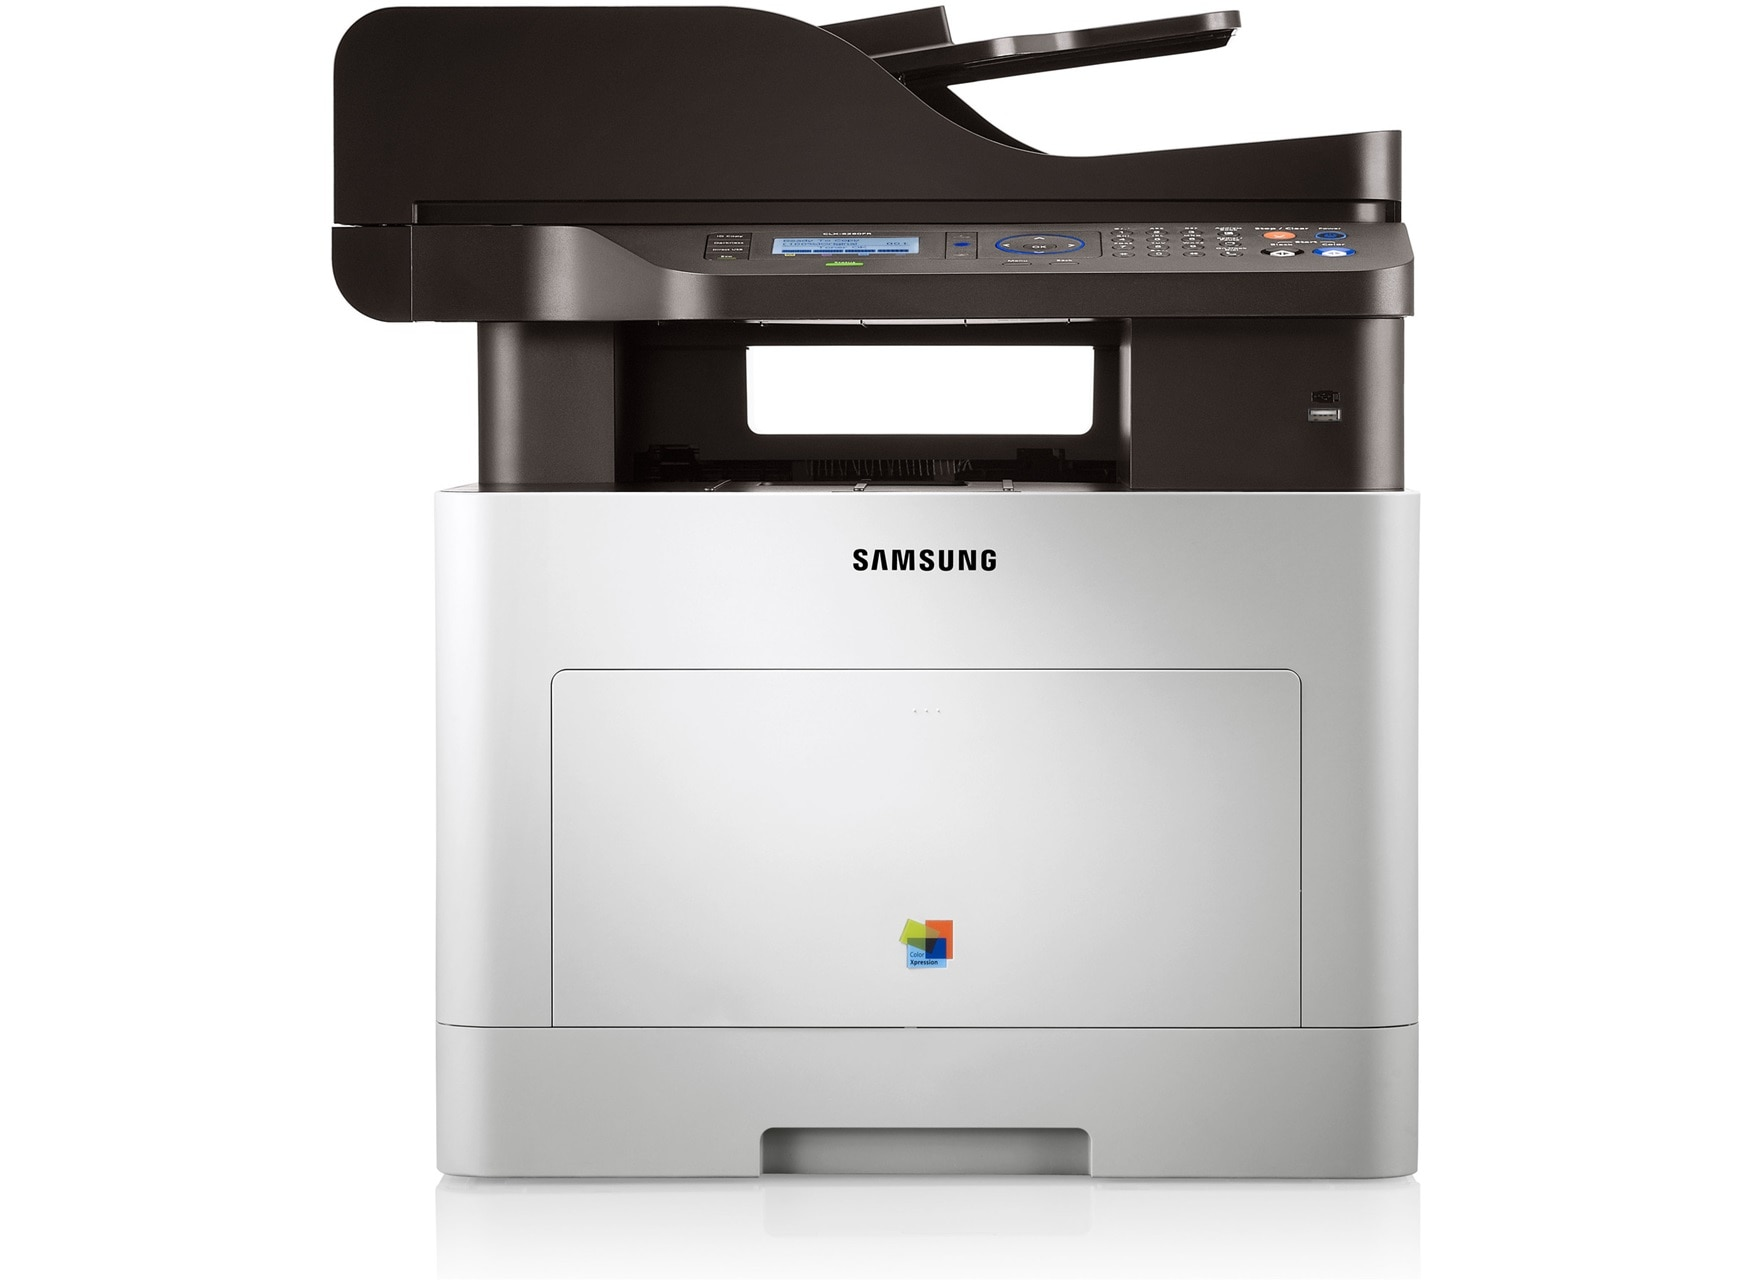 Samsung Multifunktionsdrucker Samsung Clx 6260fr Farblaser Multifunktionsdrucker Hp